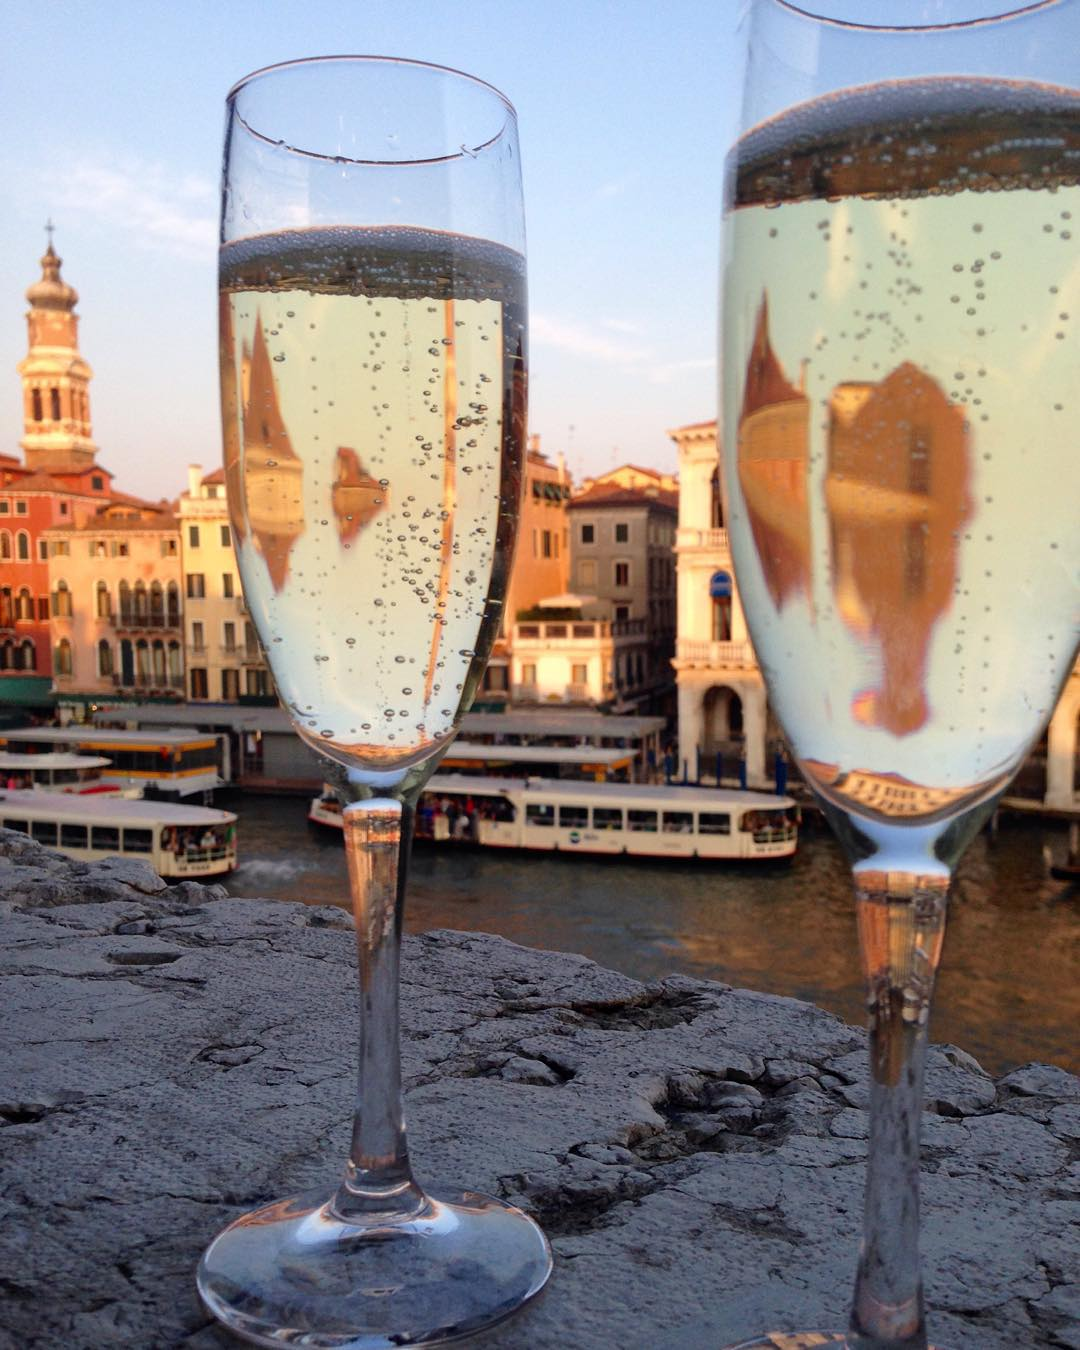 Lving this hotel room view of the grand canal! #venice #venezia #honeymoon #birnbaumified